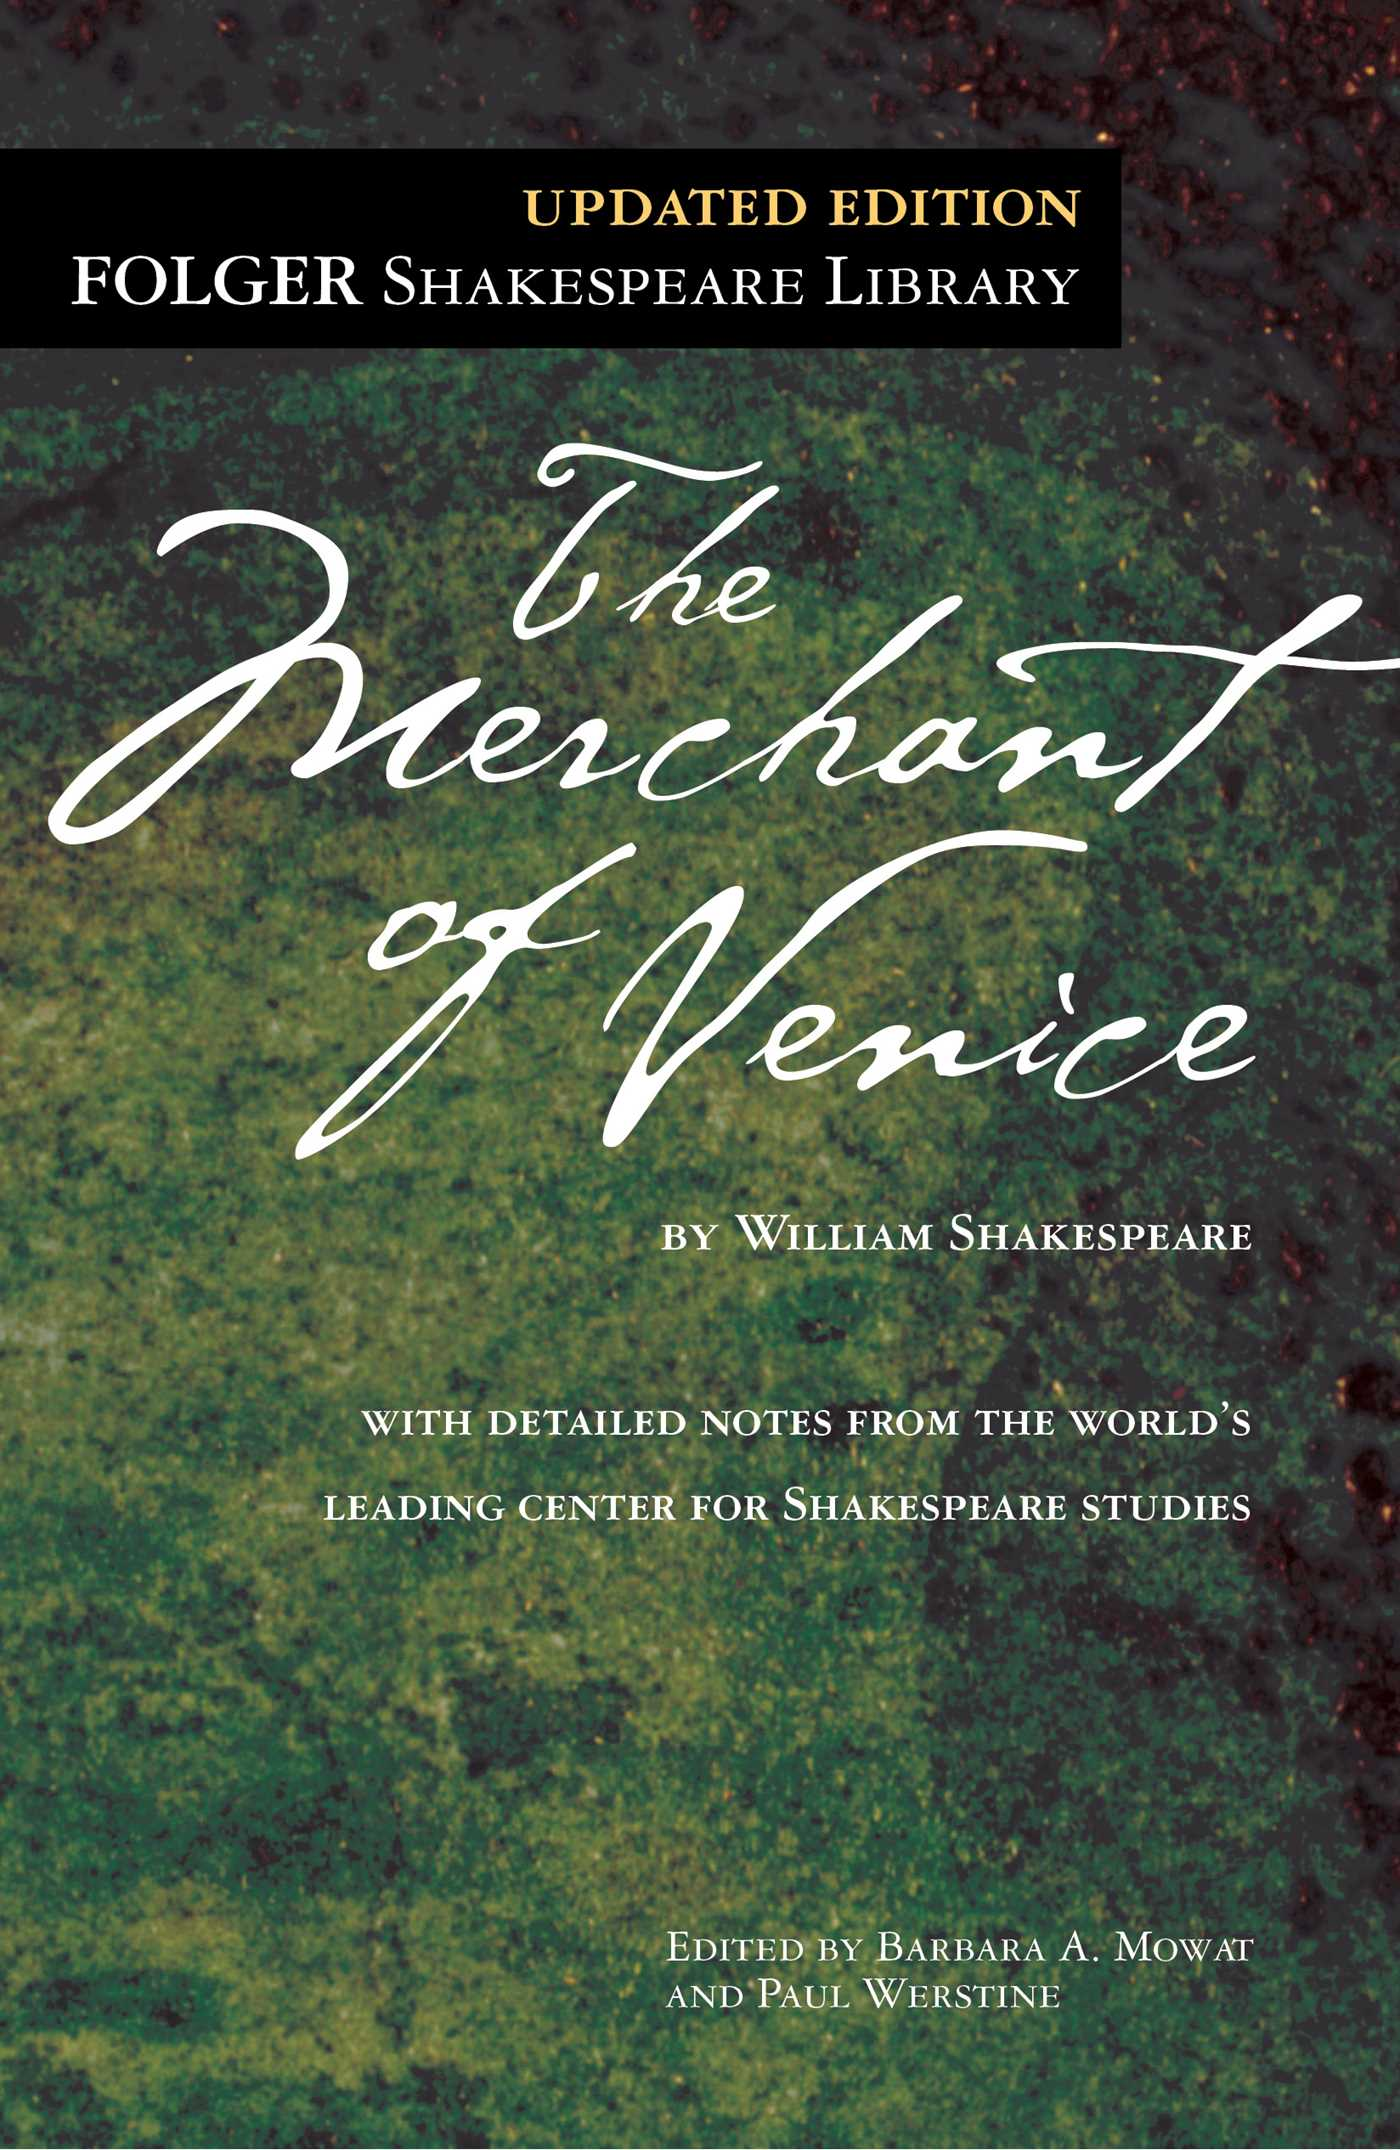 merchant of venice essay on shylock shylock pointing out that he  the merchant of venice book by william shakespeare dr barbara the merchant of venice 9781439191163 hr